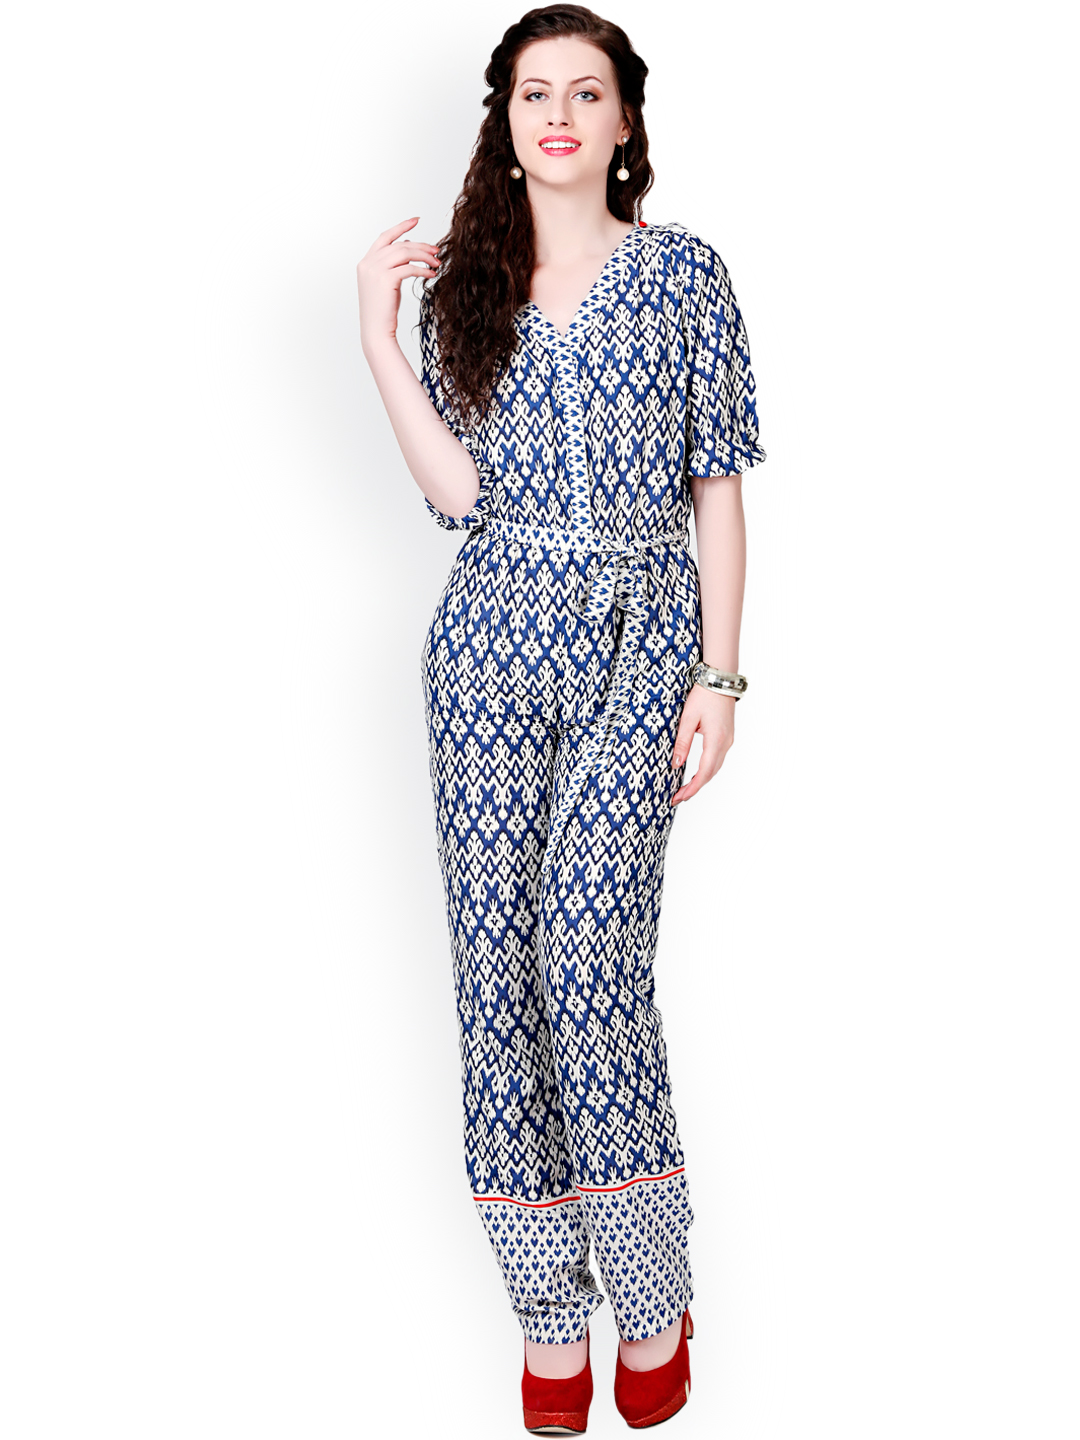 Myntra Eavan Women Black U0026 White Printed Jumpsuit 551326 | Buy Myntra Eavan Jumpsuit At Best ...